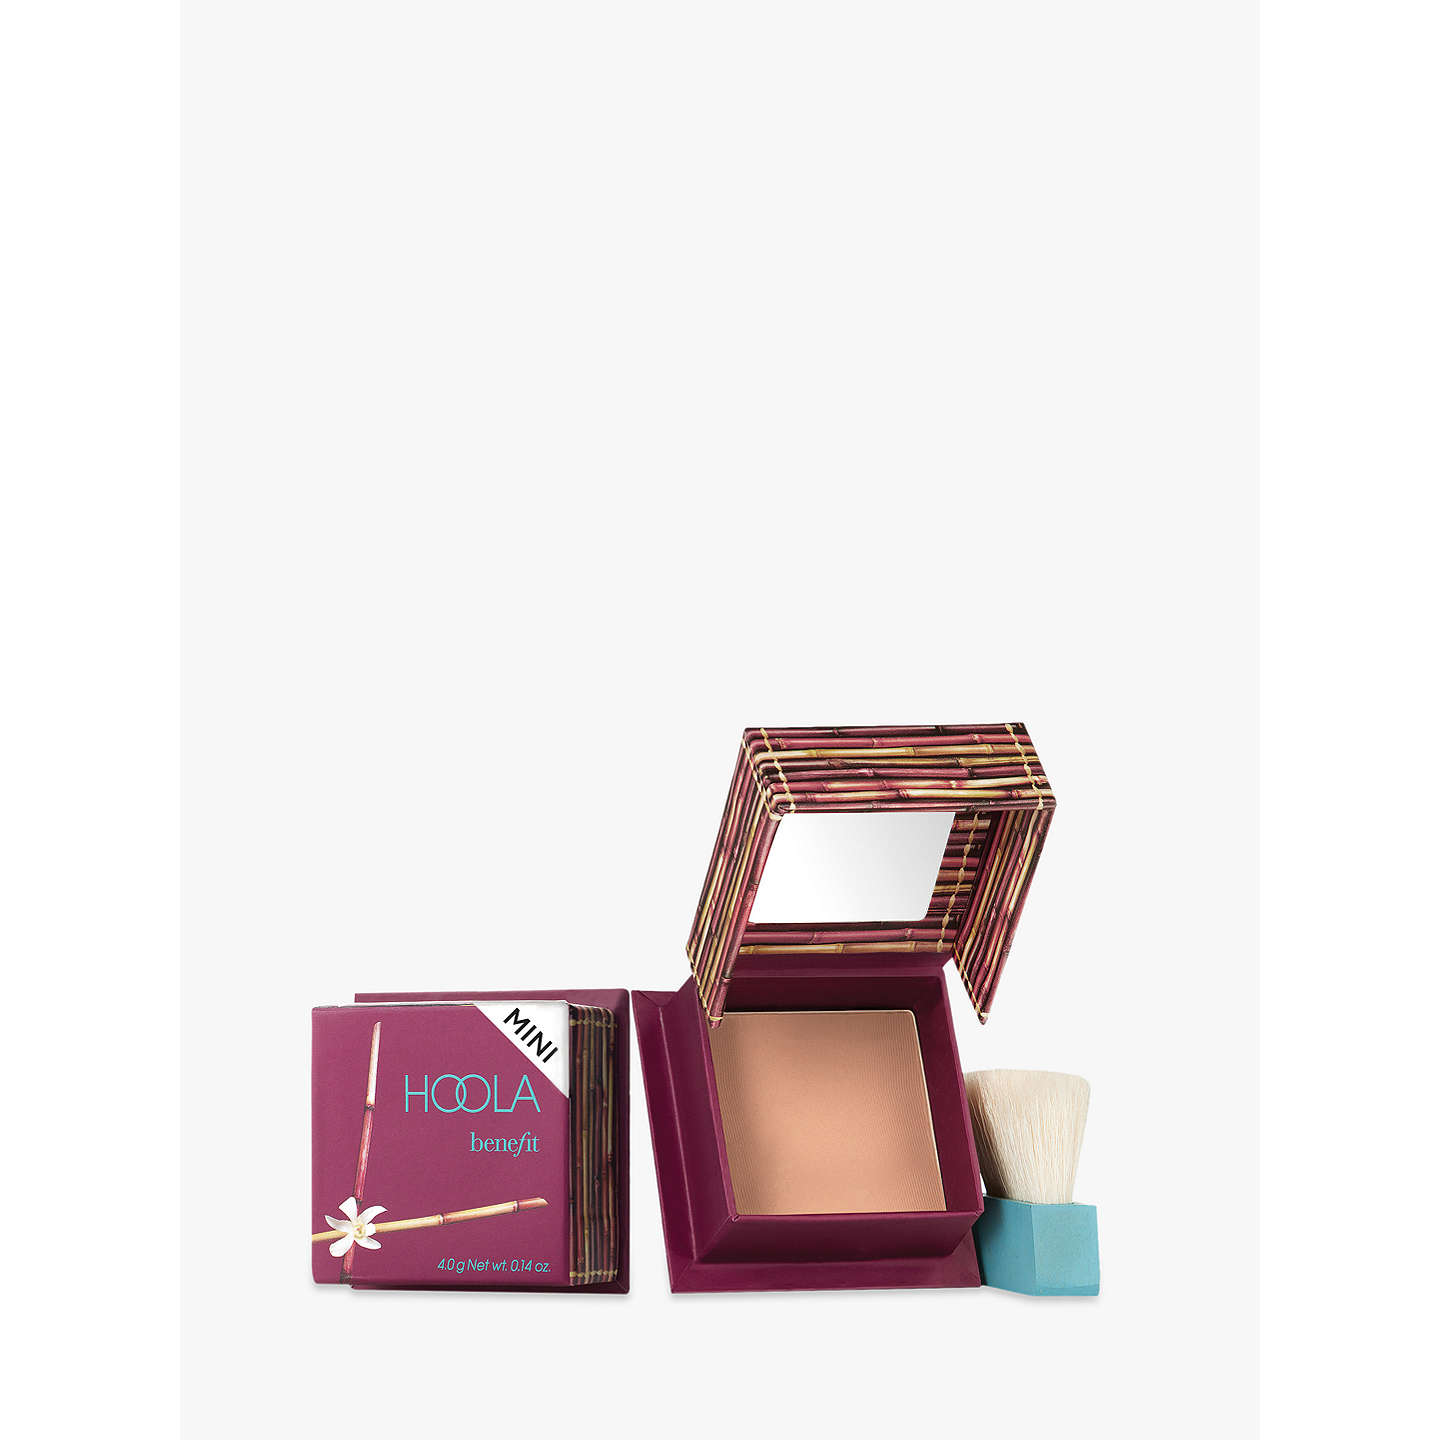 BuyBenefit Gimme Mini Hoola Powder, Tan Online at johnlewis.com